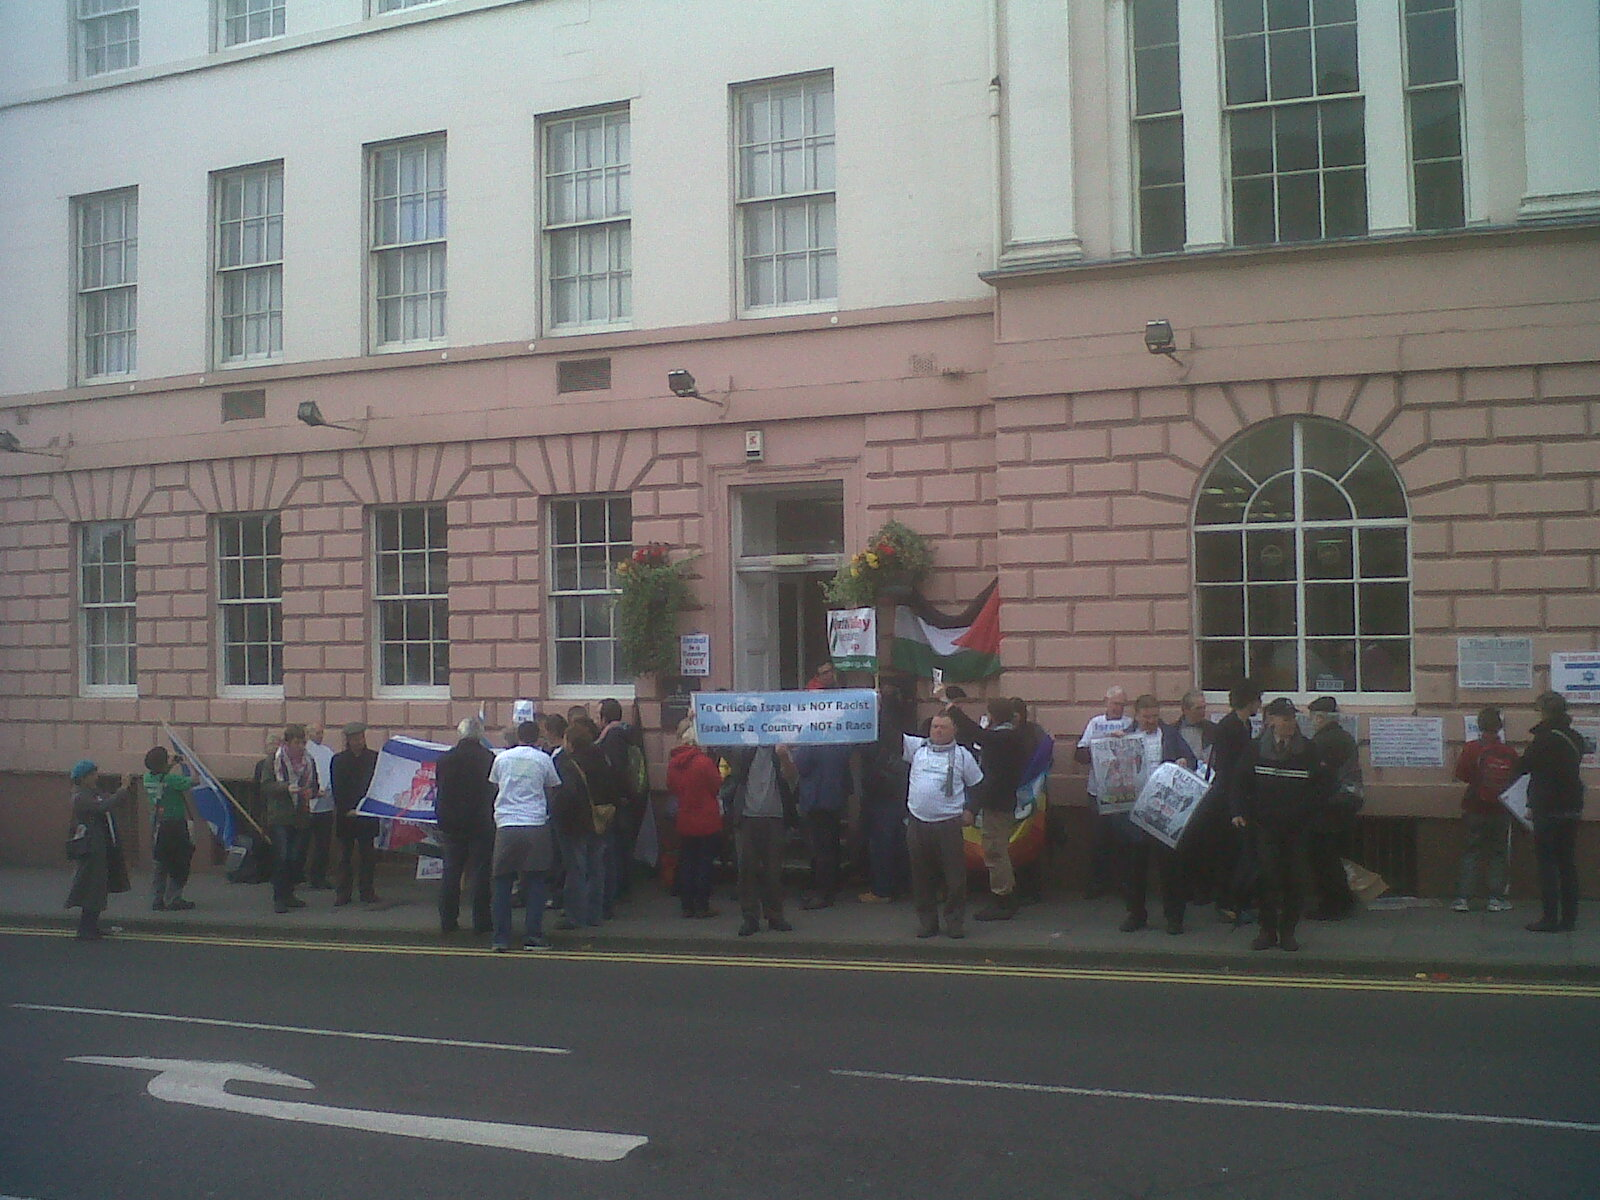 Supporters gathered both inside and outside the court